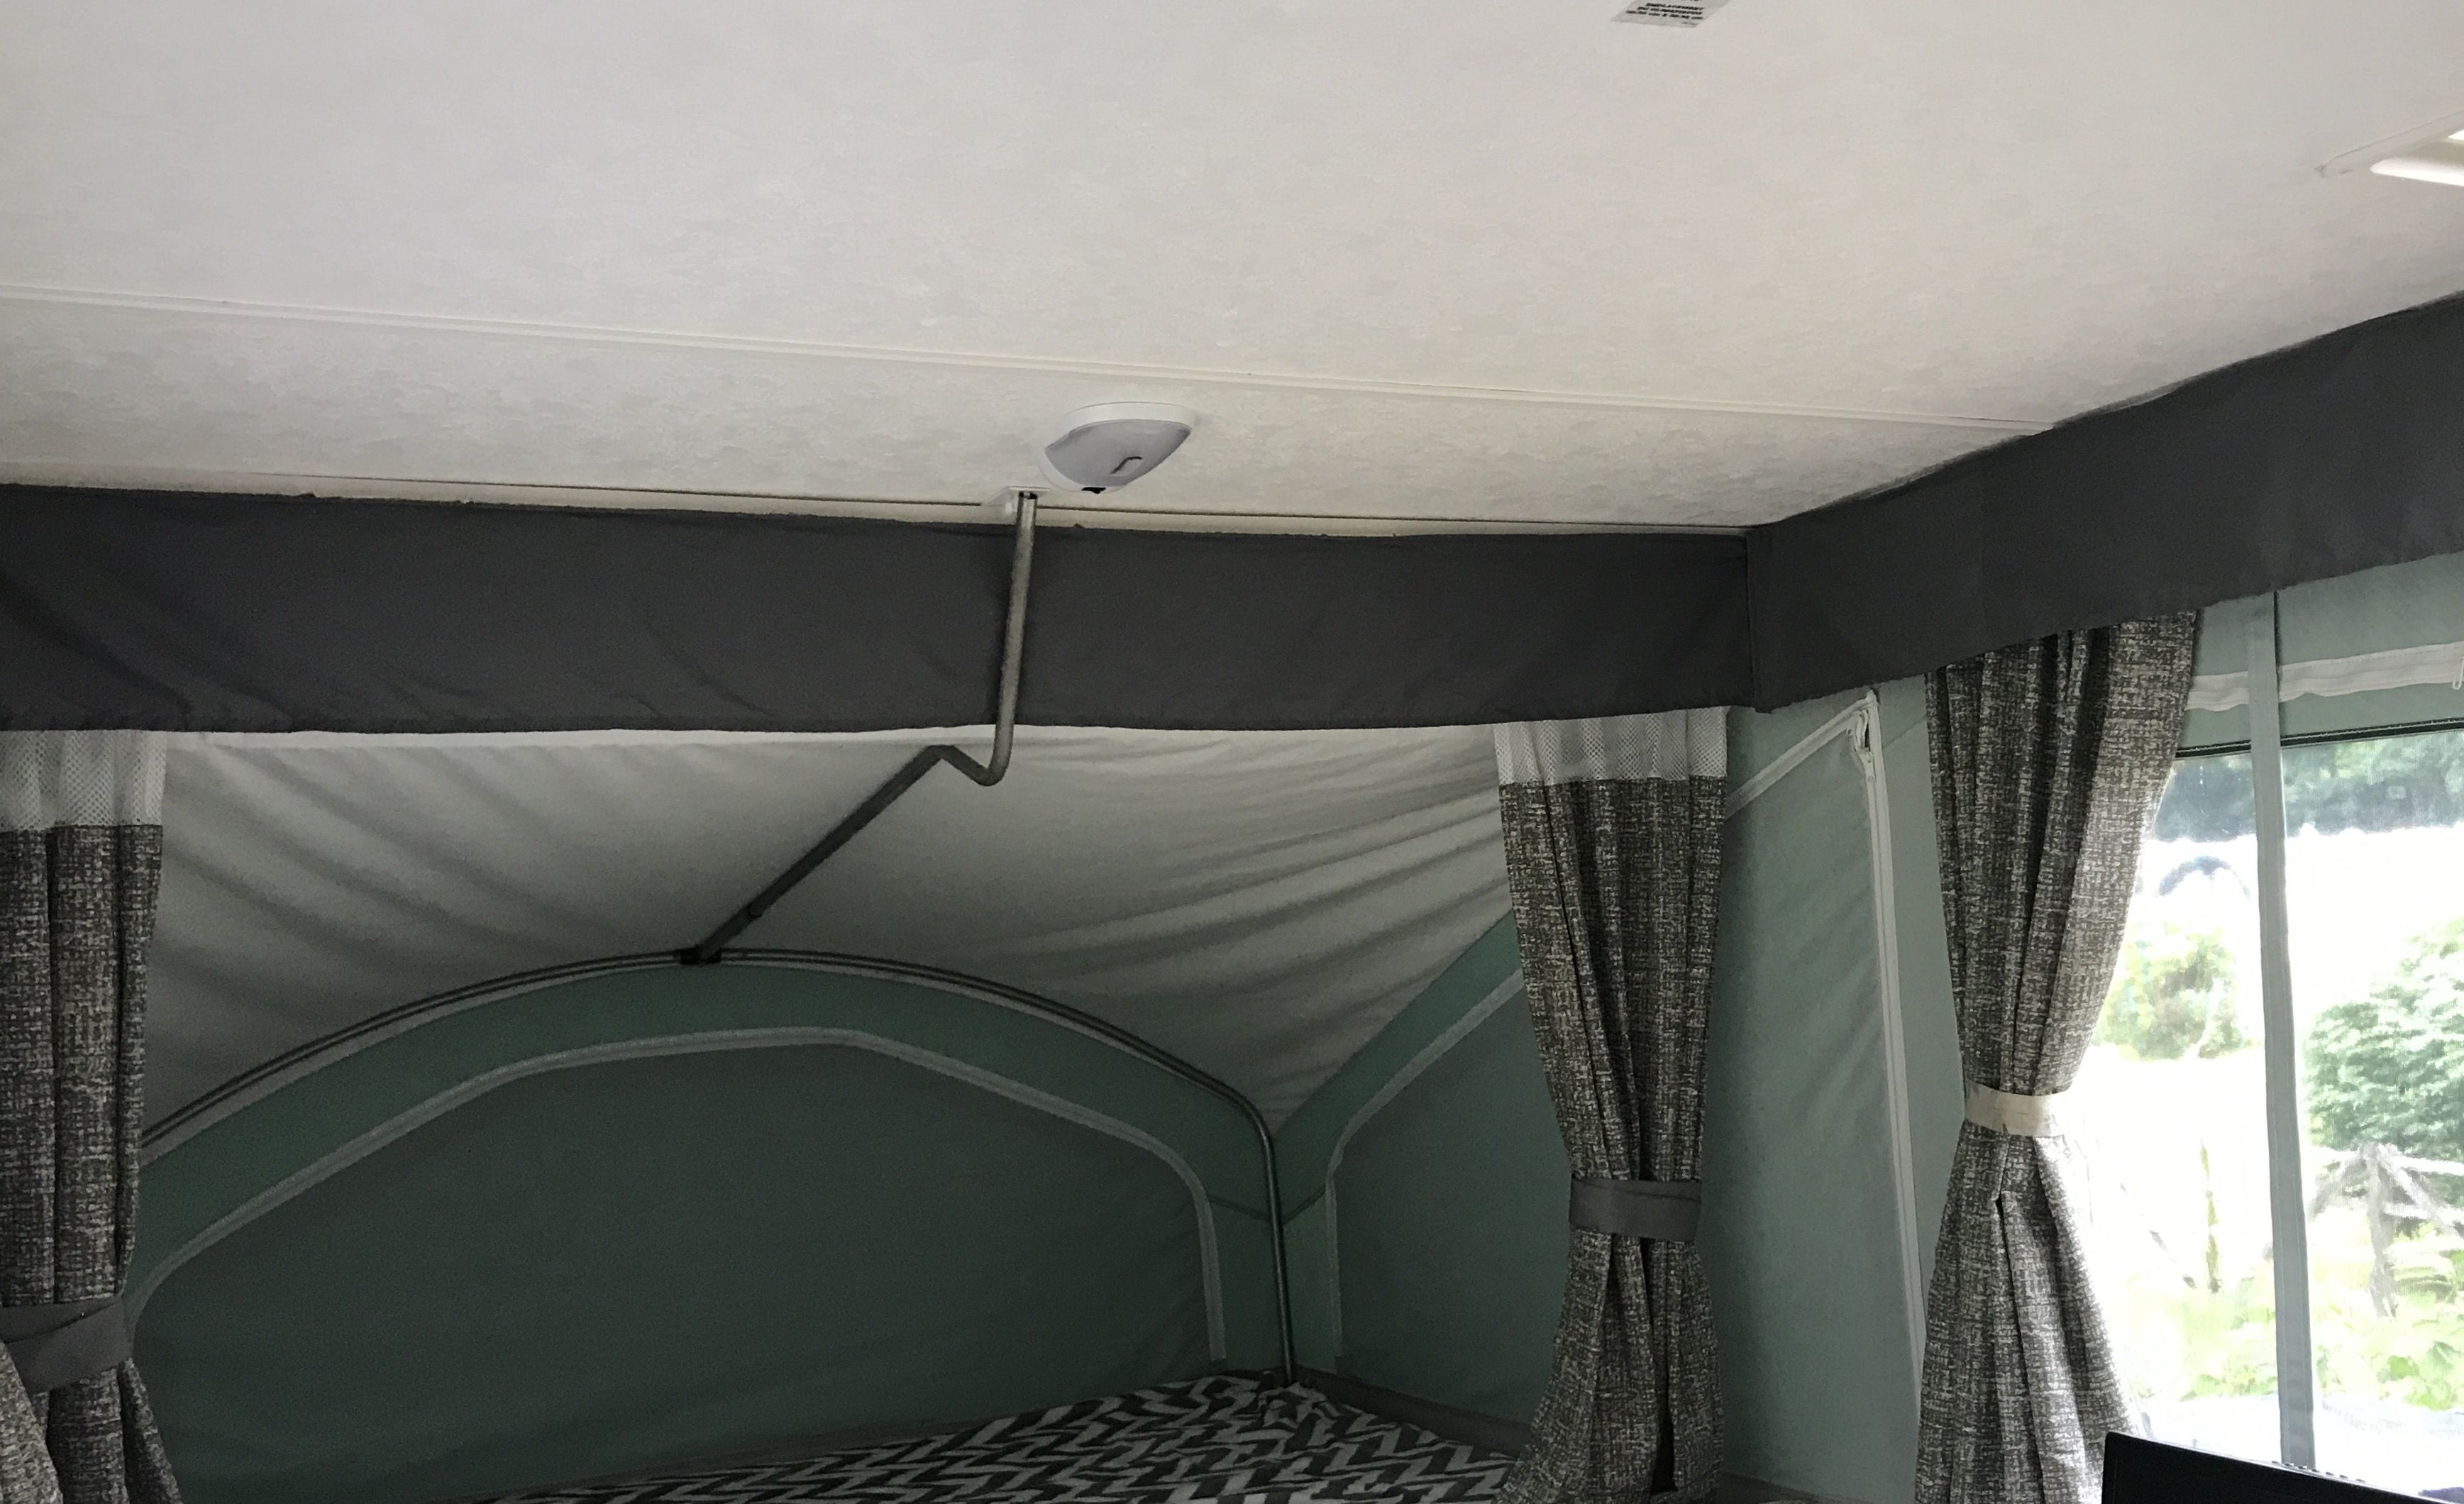 Popup Camper Valance Curtain Using Microfiber Flat Sheets From